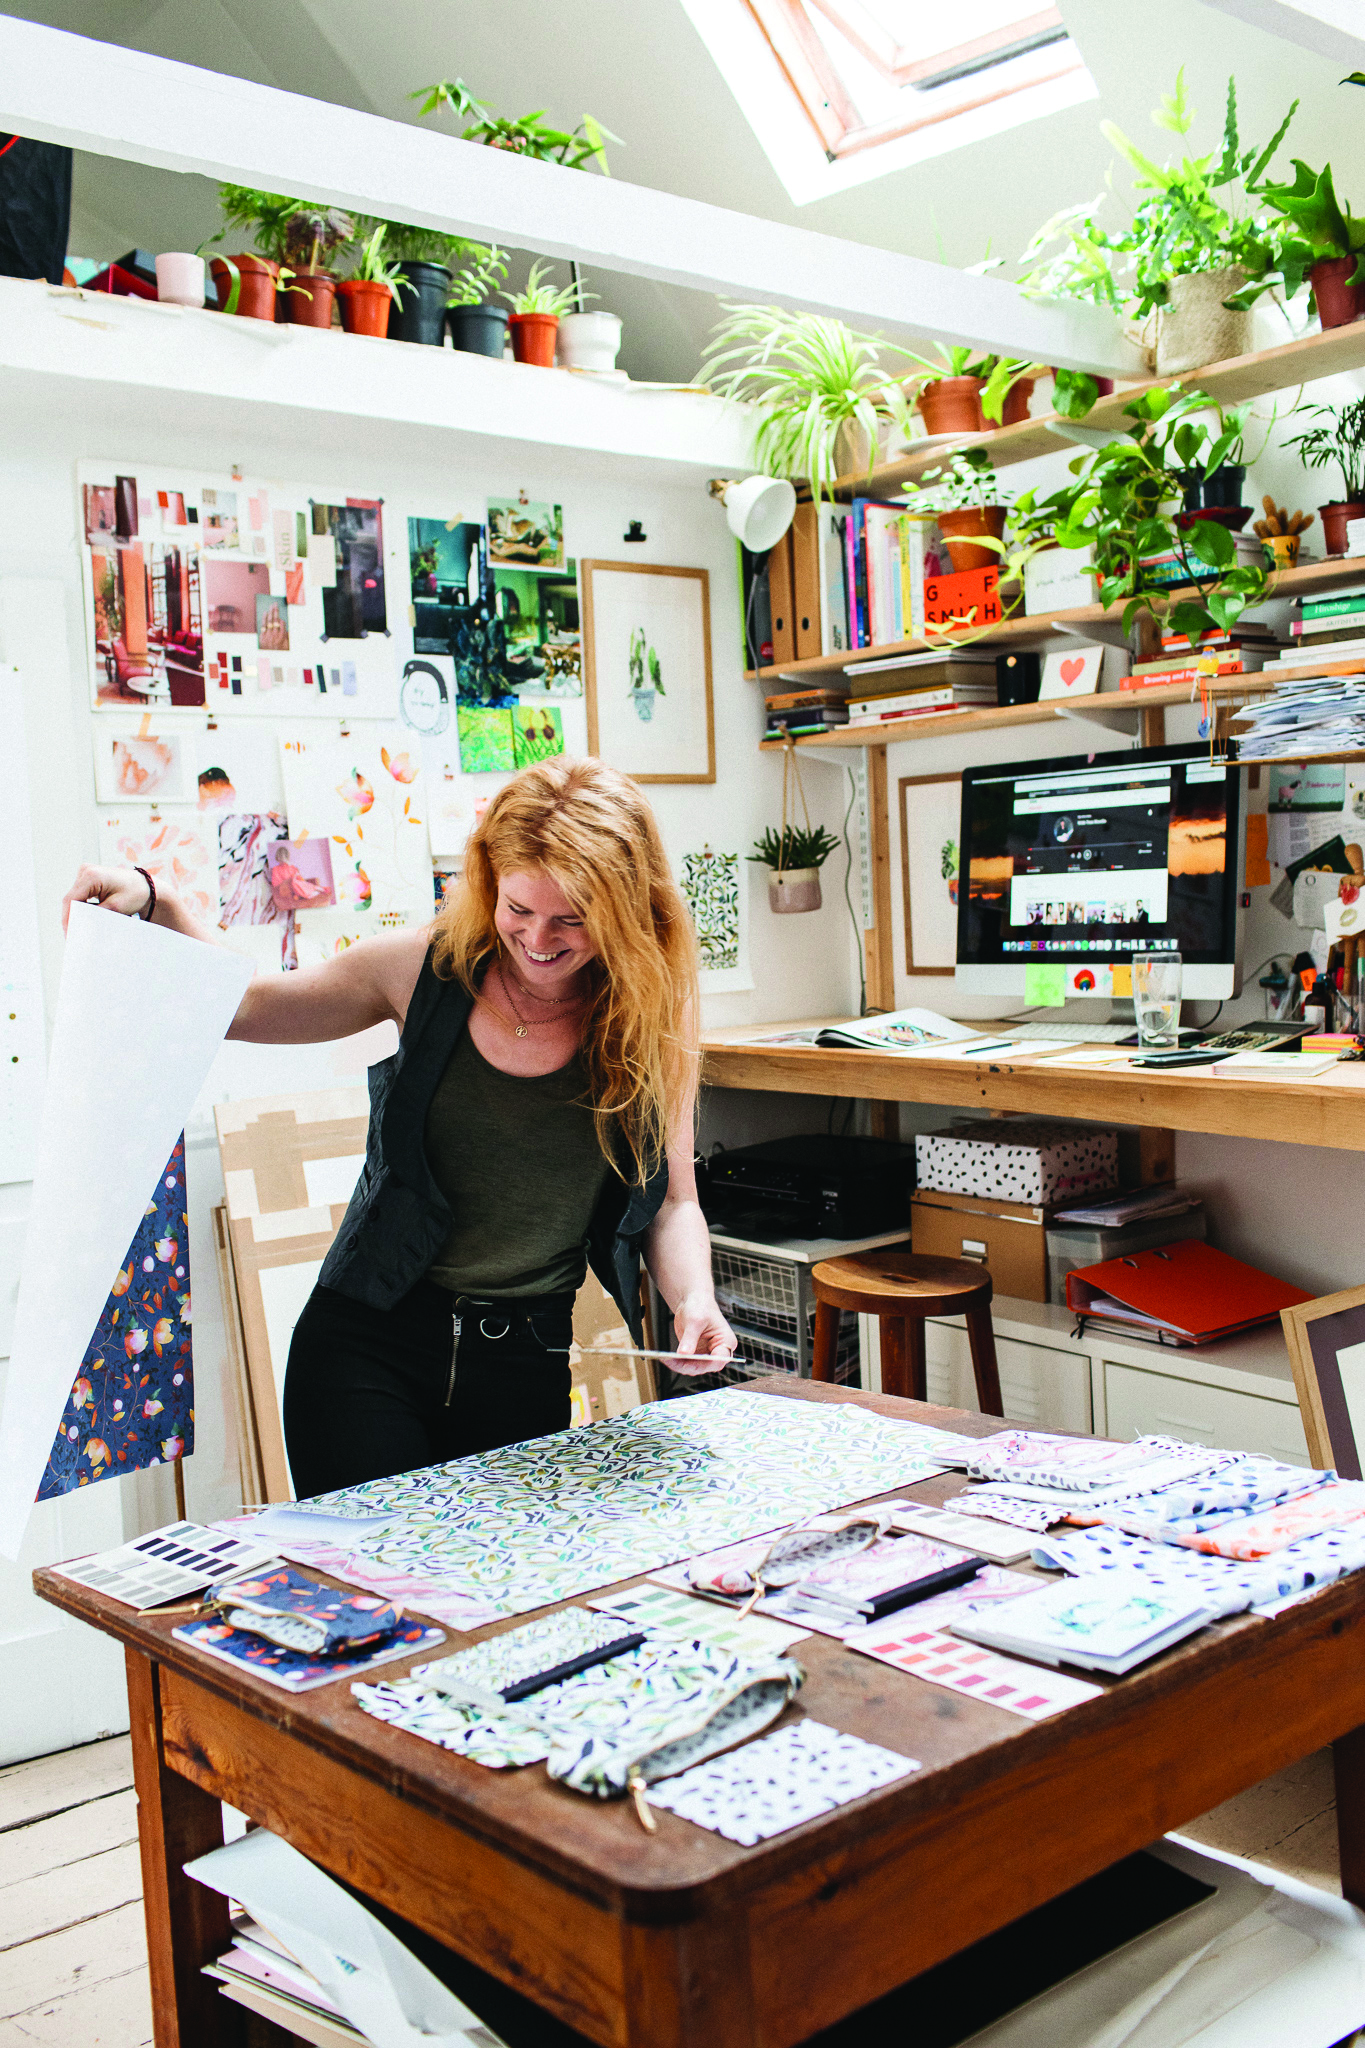 Above: Liz in her studio surrounded by her verdant and vibrant house plants.